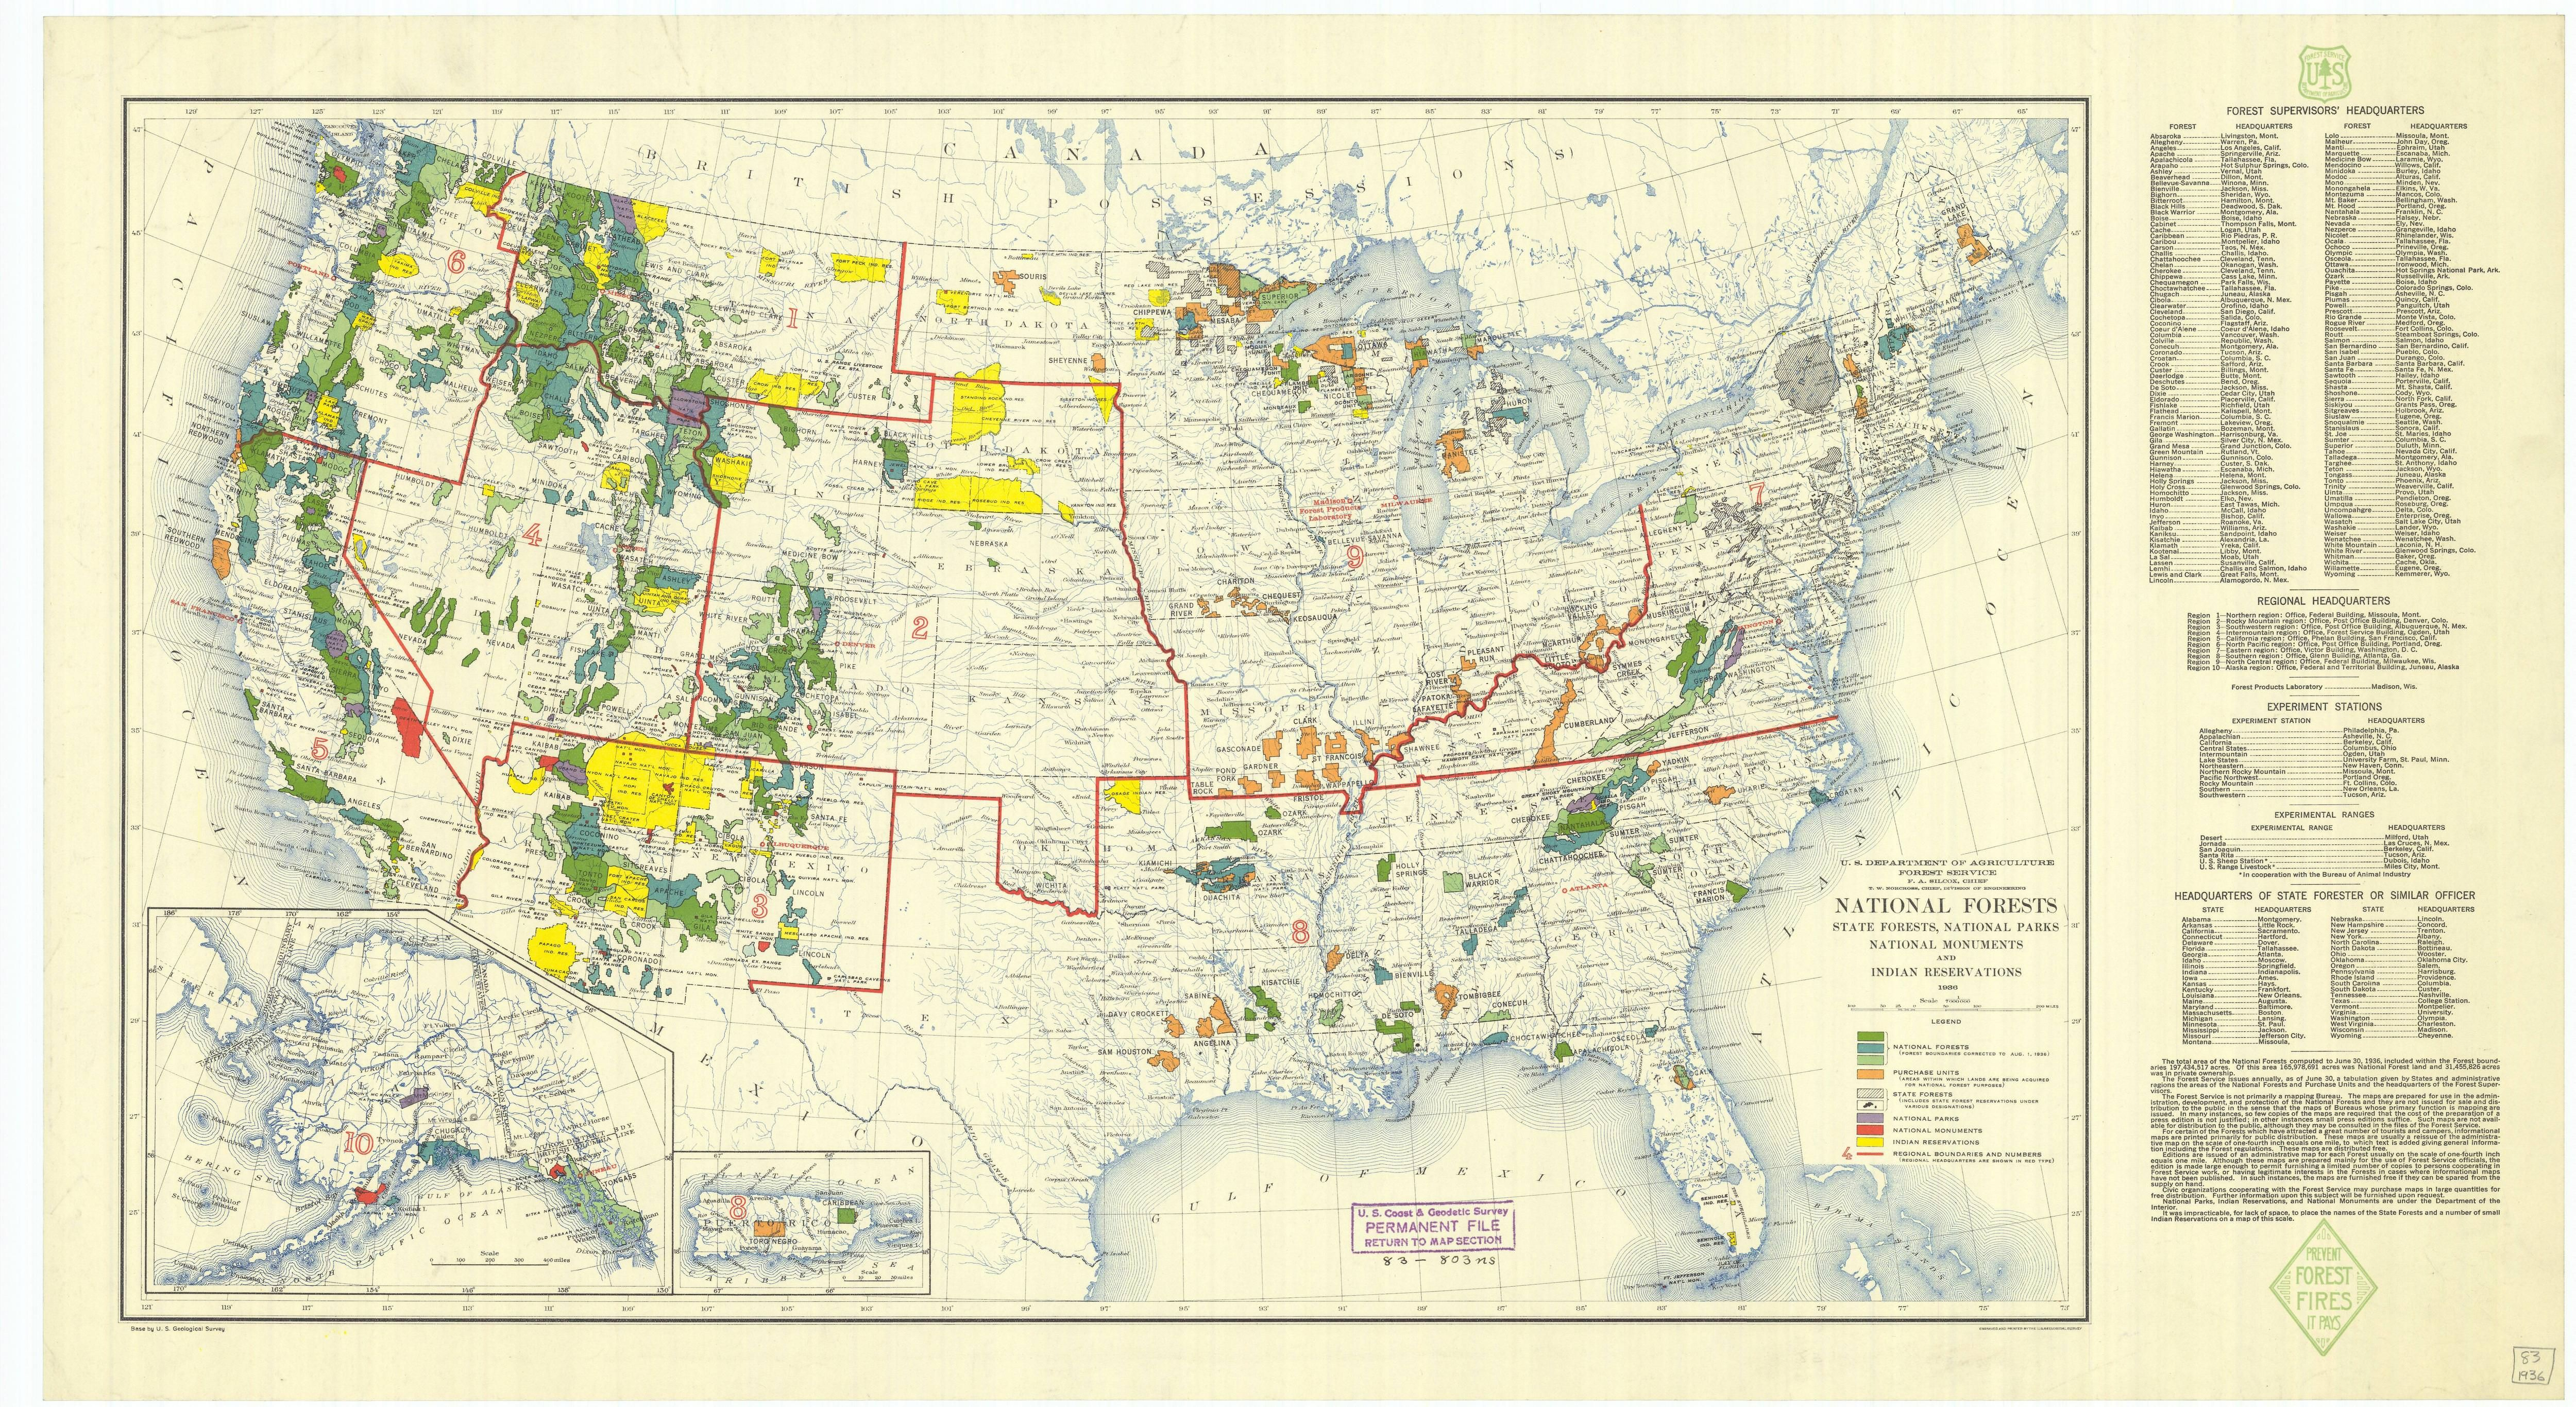 Map Of Us National Parks And Monuments Map of U.S. National Forests, State Forests, National Parks